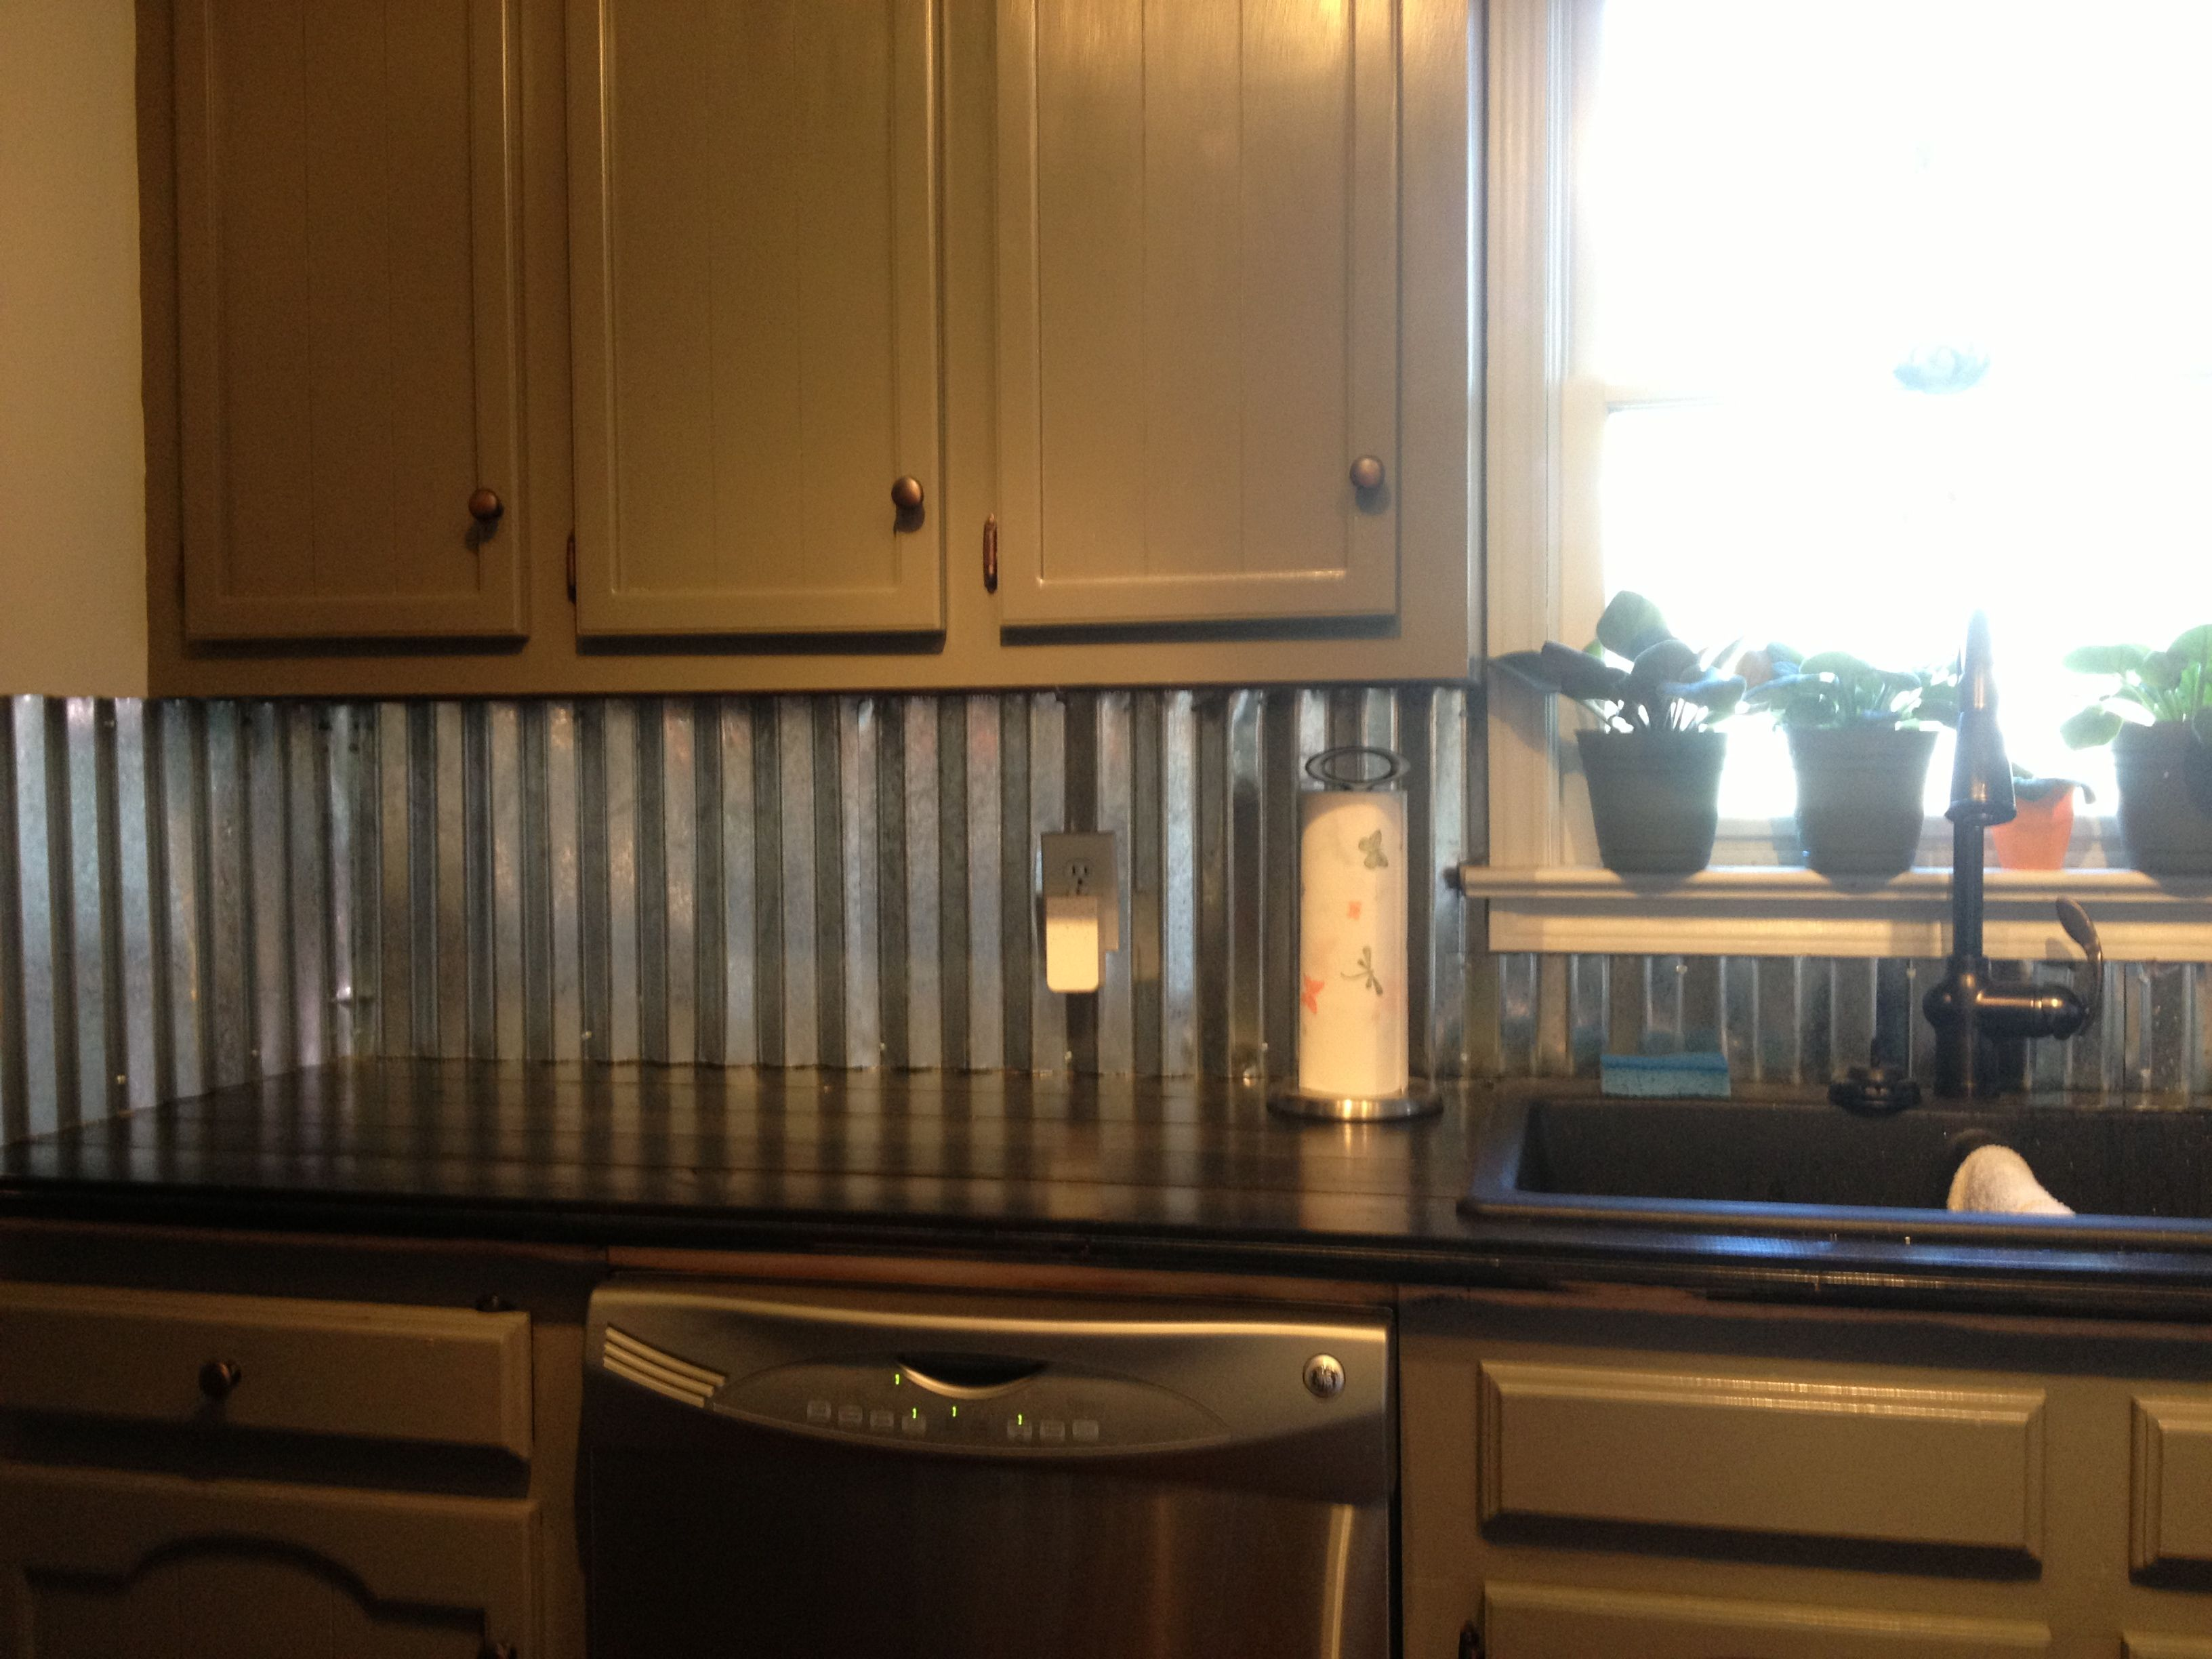 corrugated metal backsplash - Kitchen Metal Backsplash